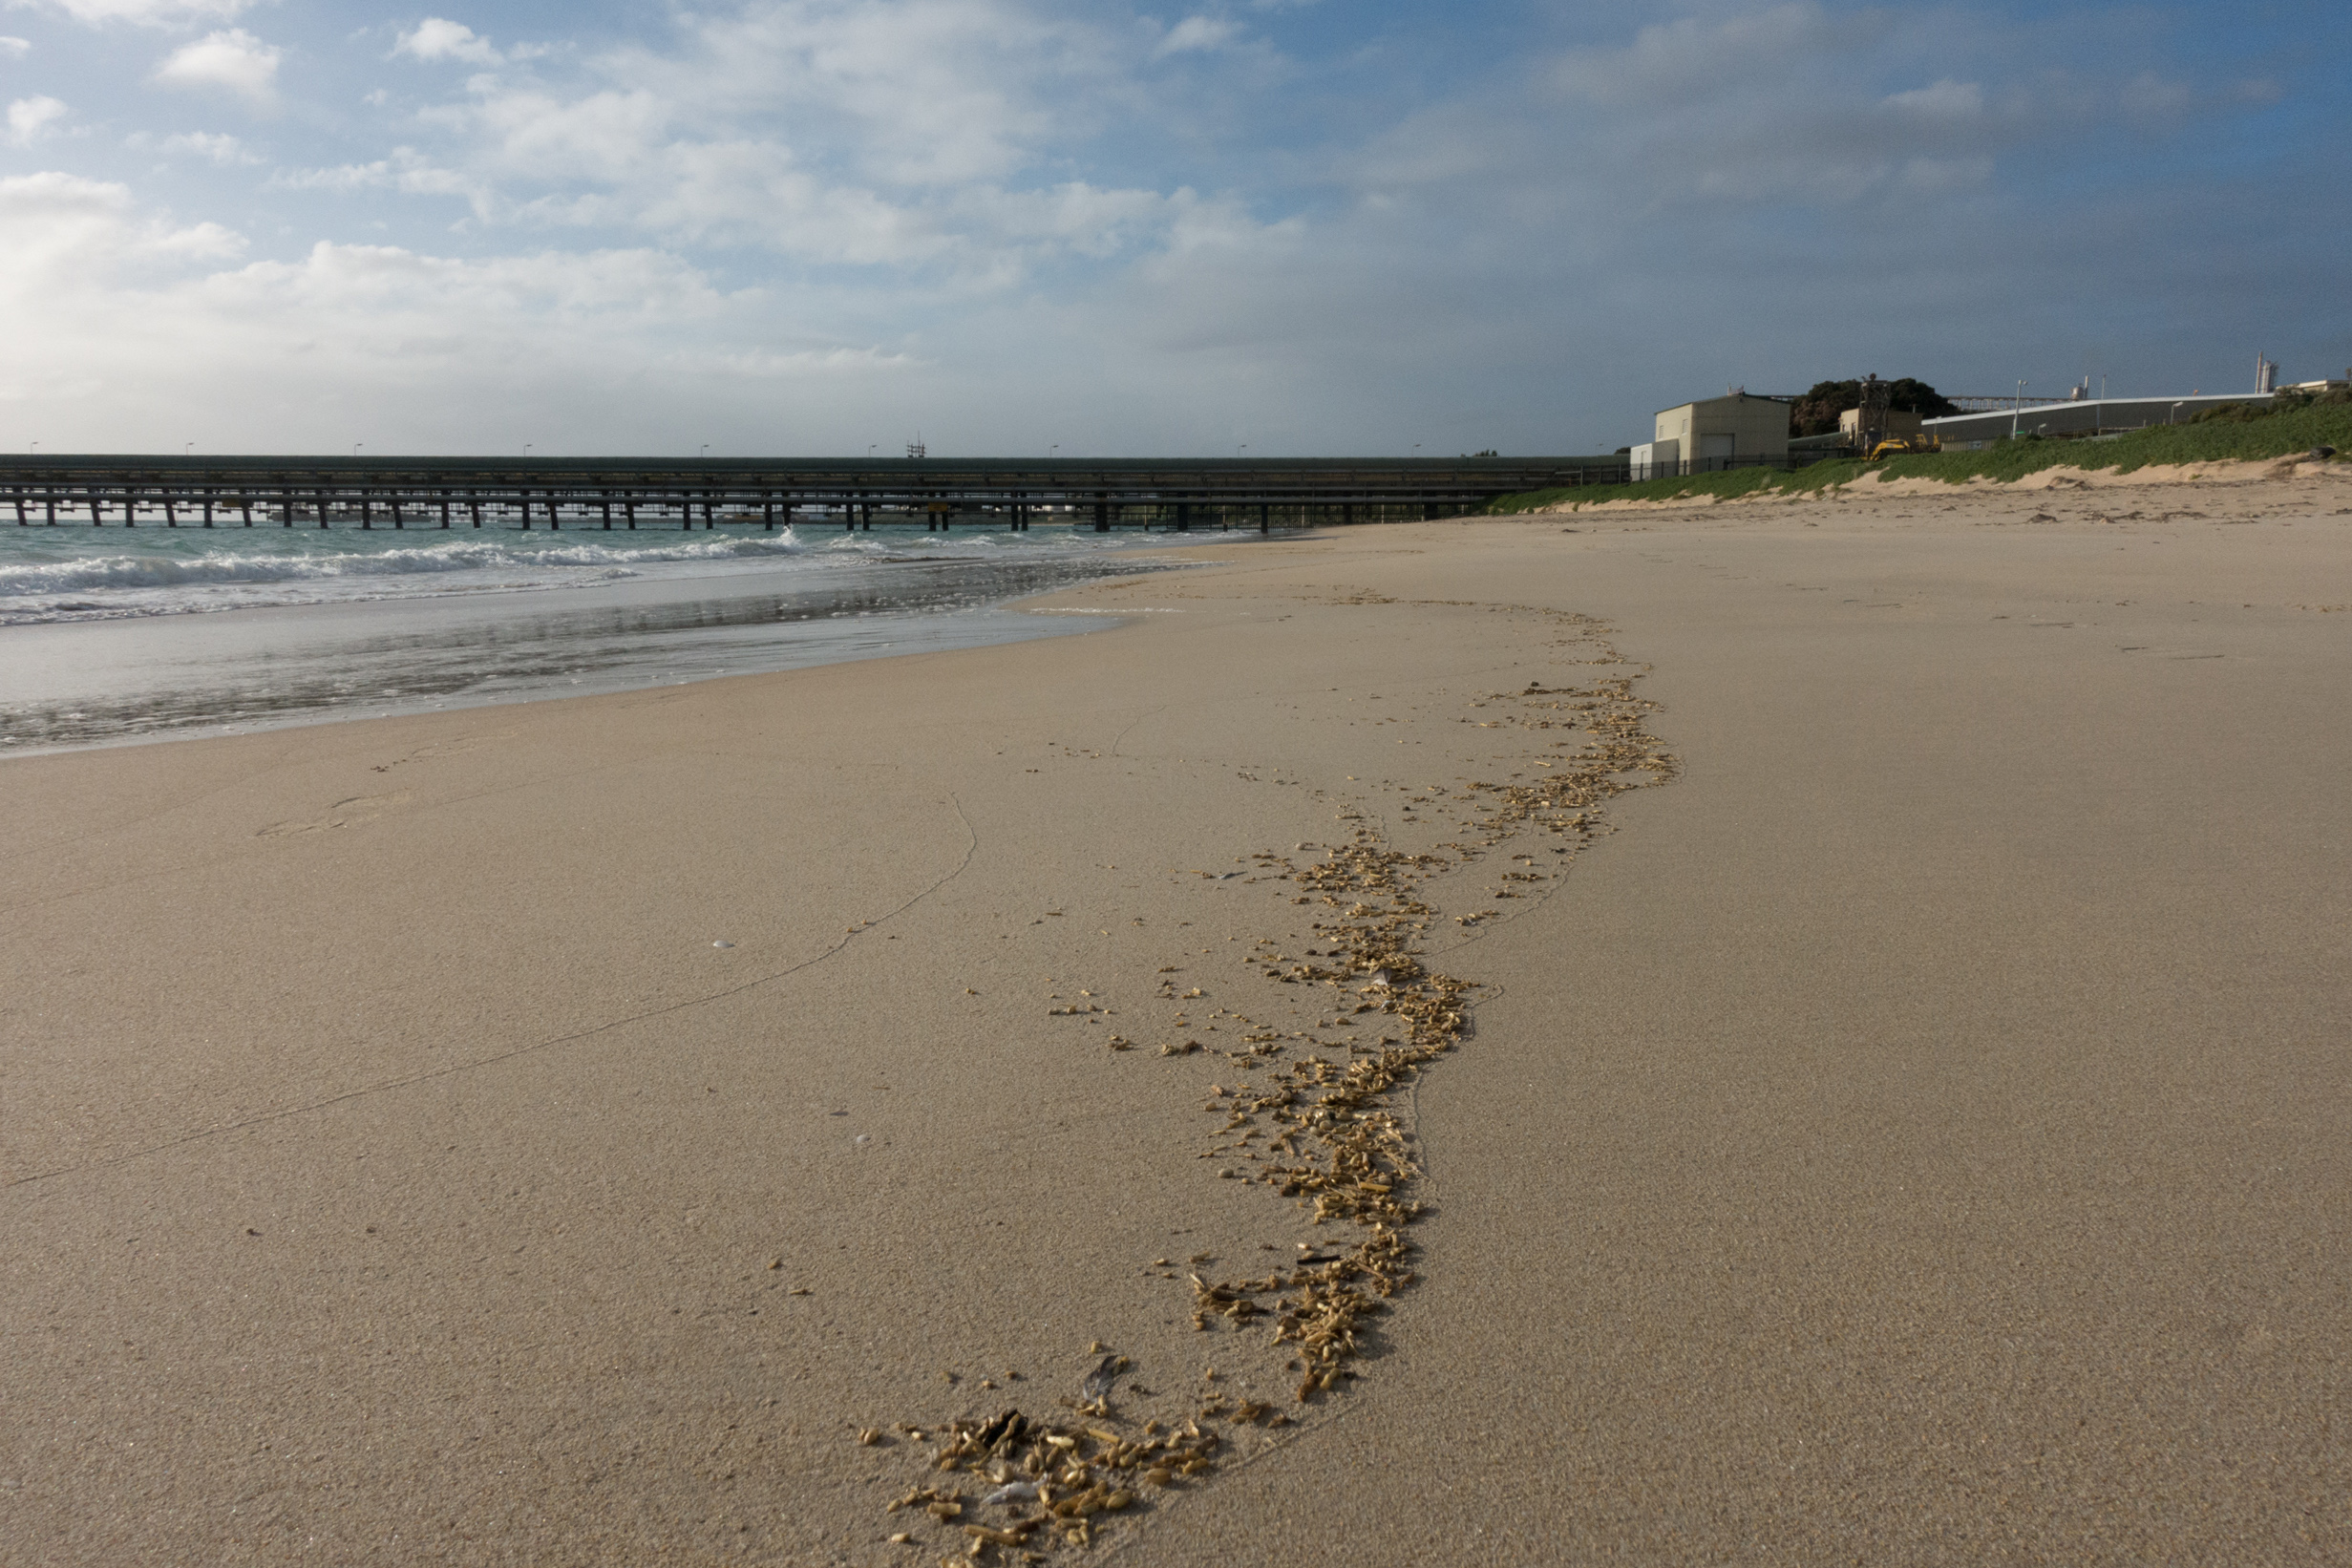 Plate 4: The beach north of Kwinana beach looking north with the impassable jetty in the distance